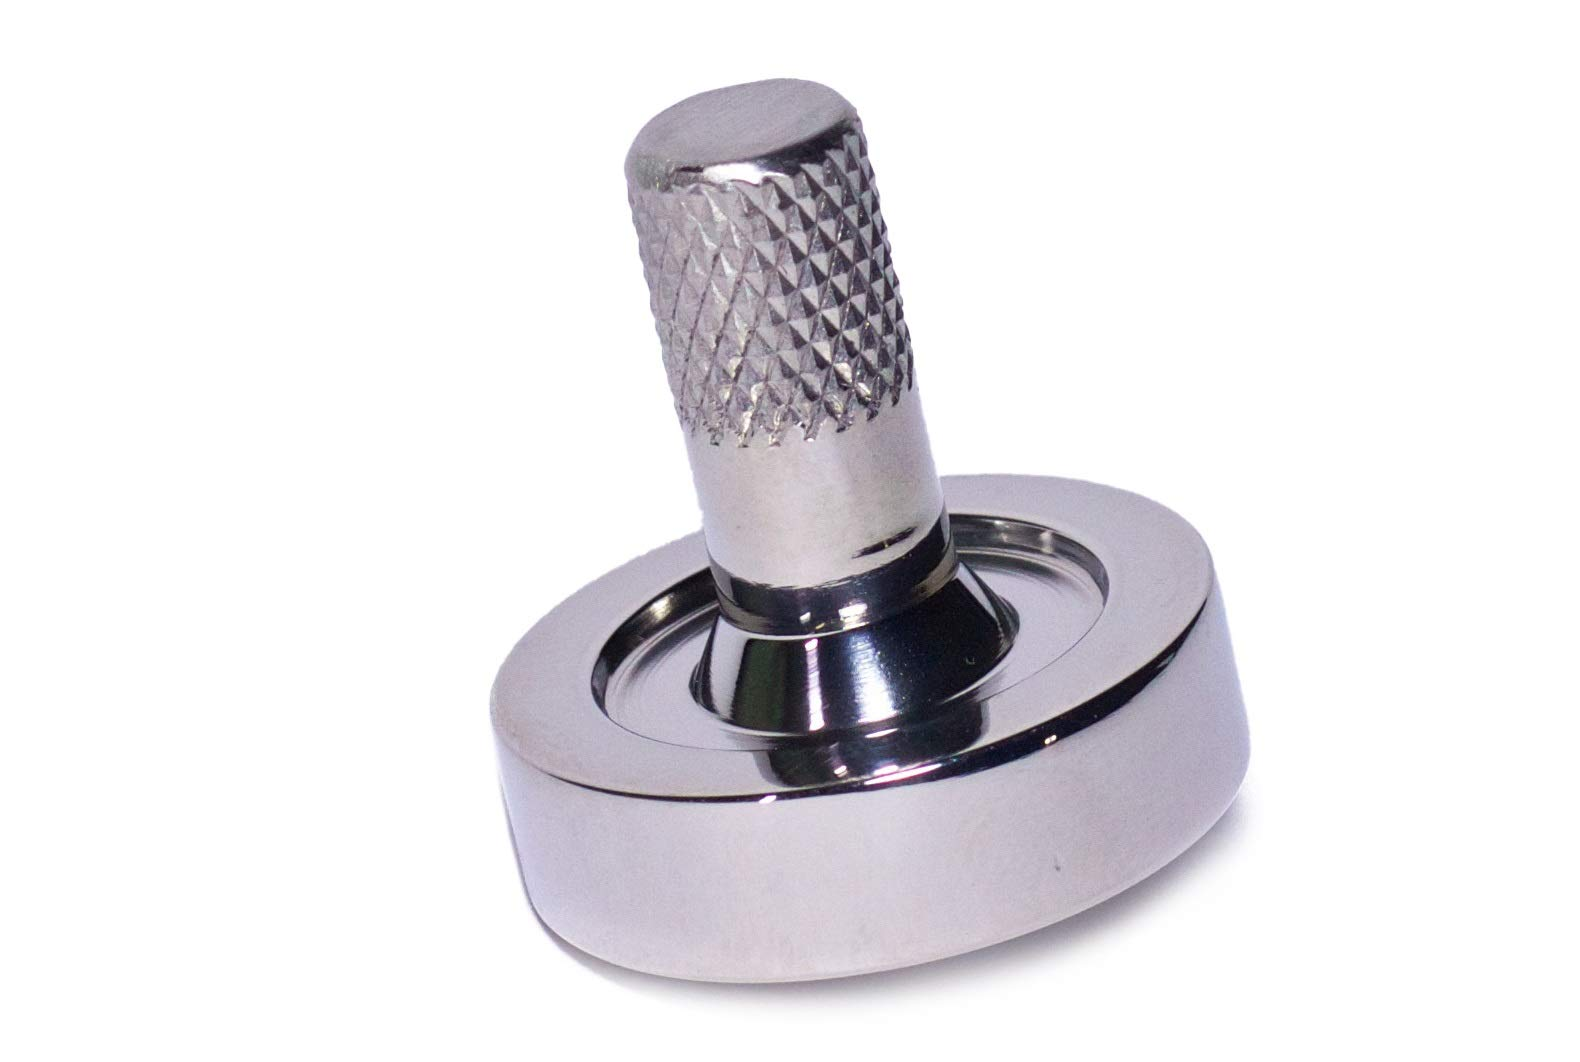 Bruce Charles Designs Schulte Stainless Steel Metal Spinning Top | EDC Desk Toys for Office for Adults and Kids | Unique Gift by Bruce Charles Designs